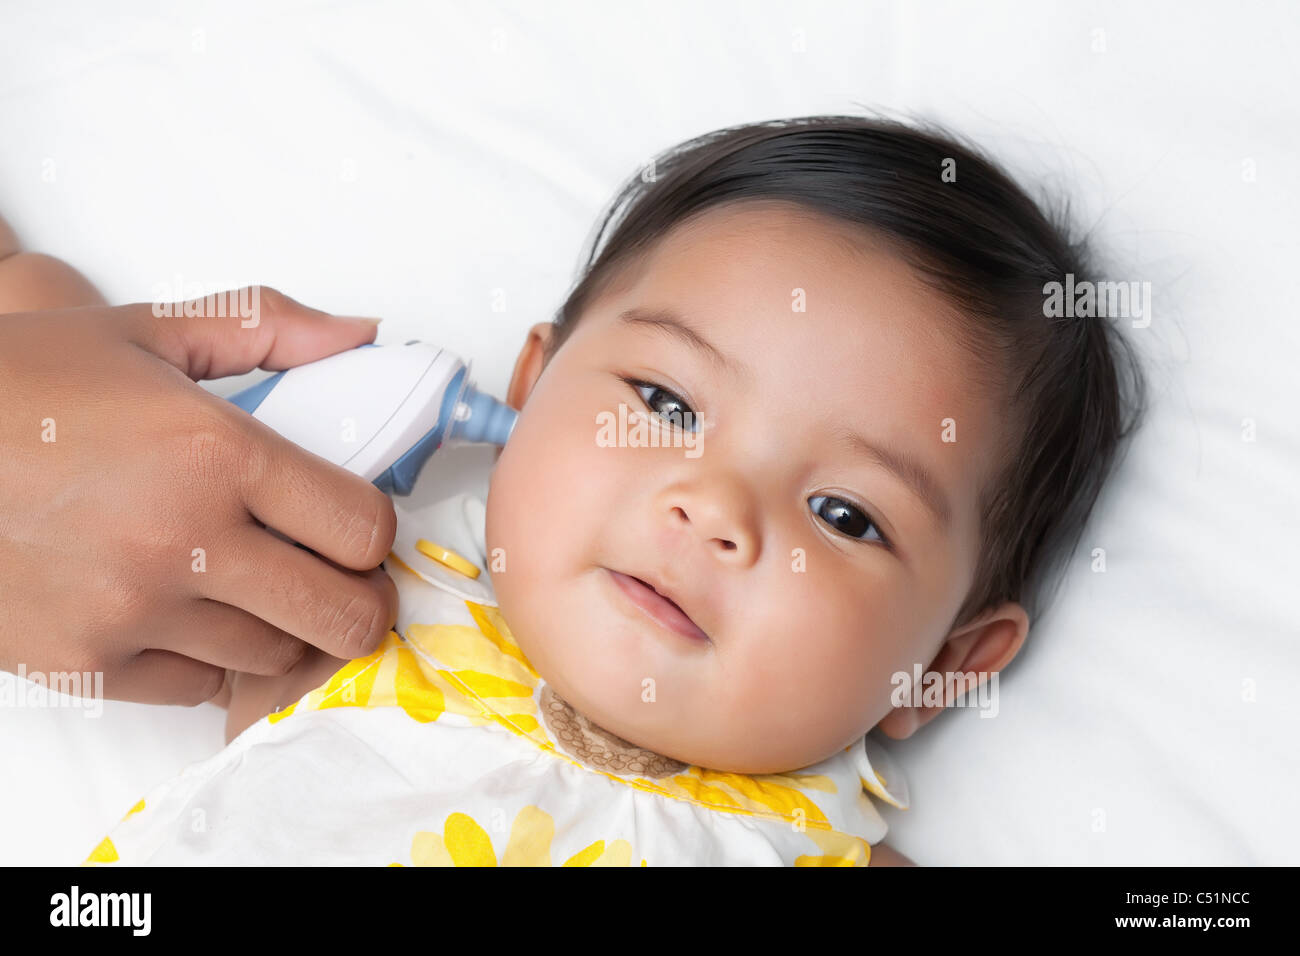 First Thermometer Stock Photos Amp First Thermometer Stock